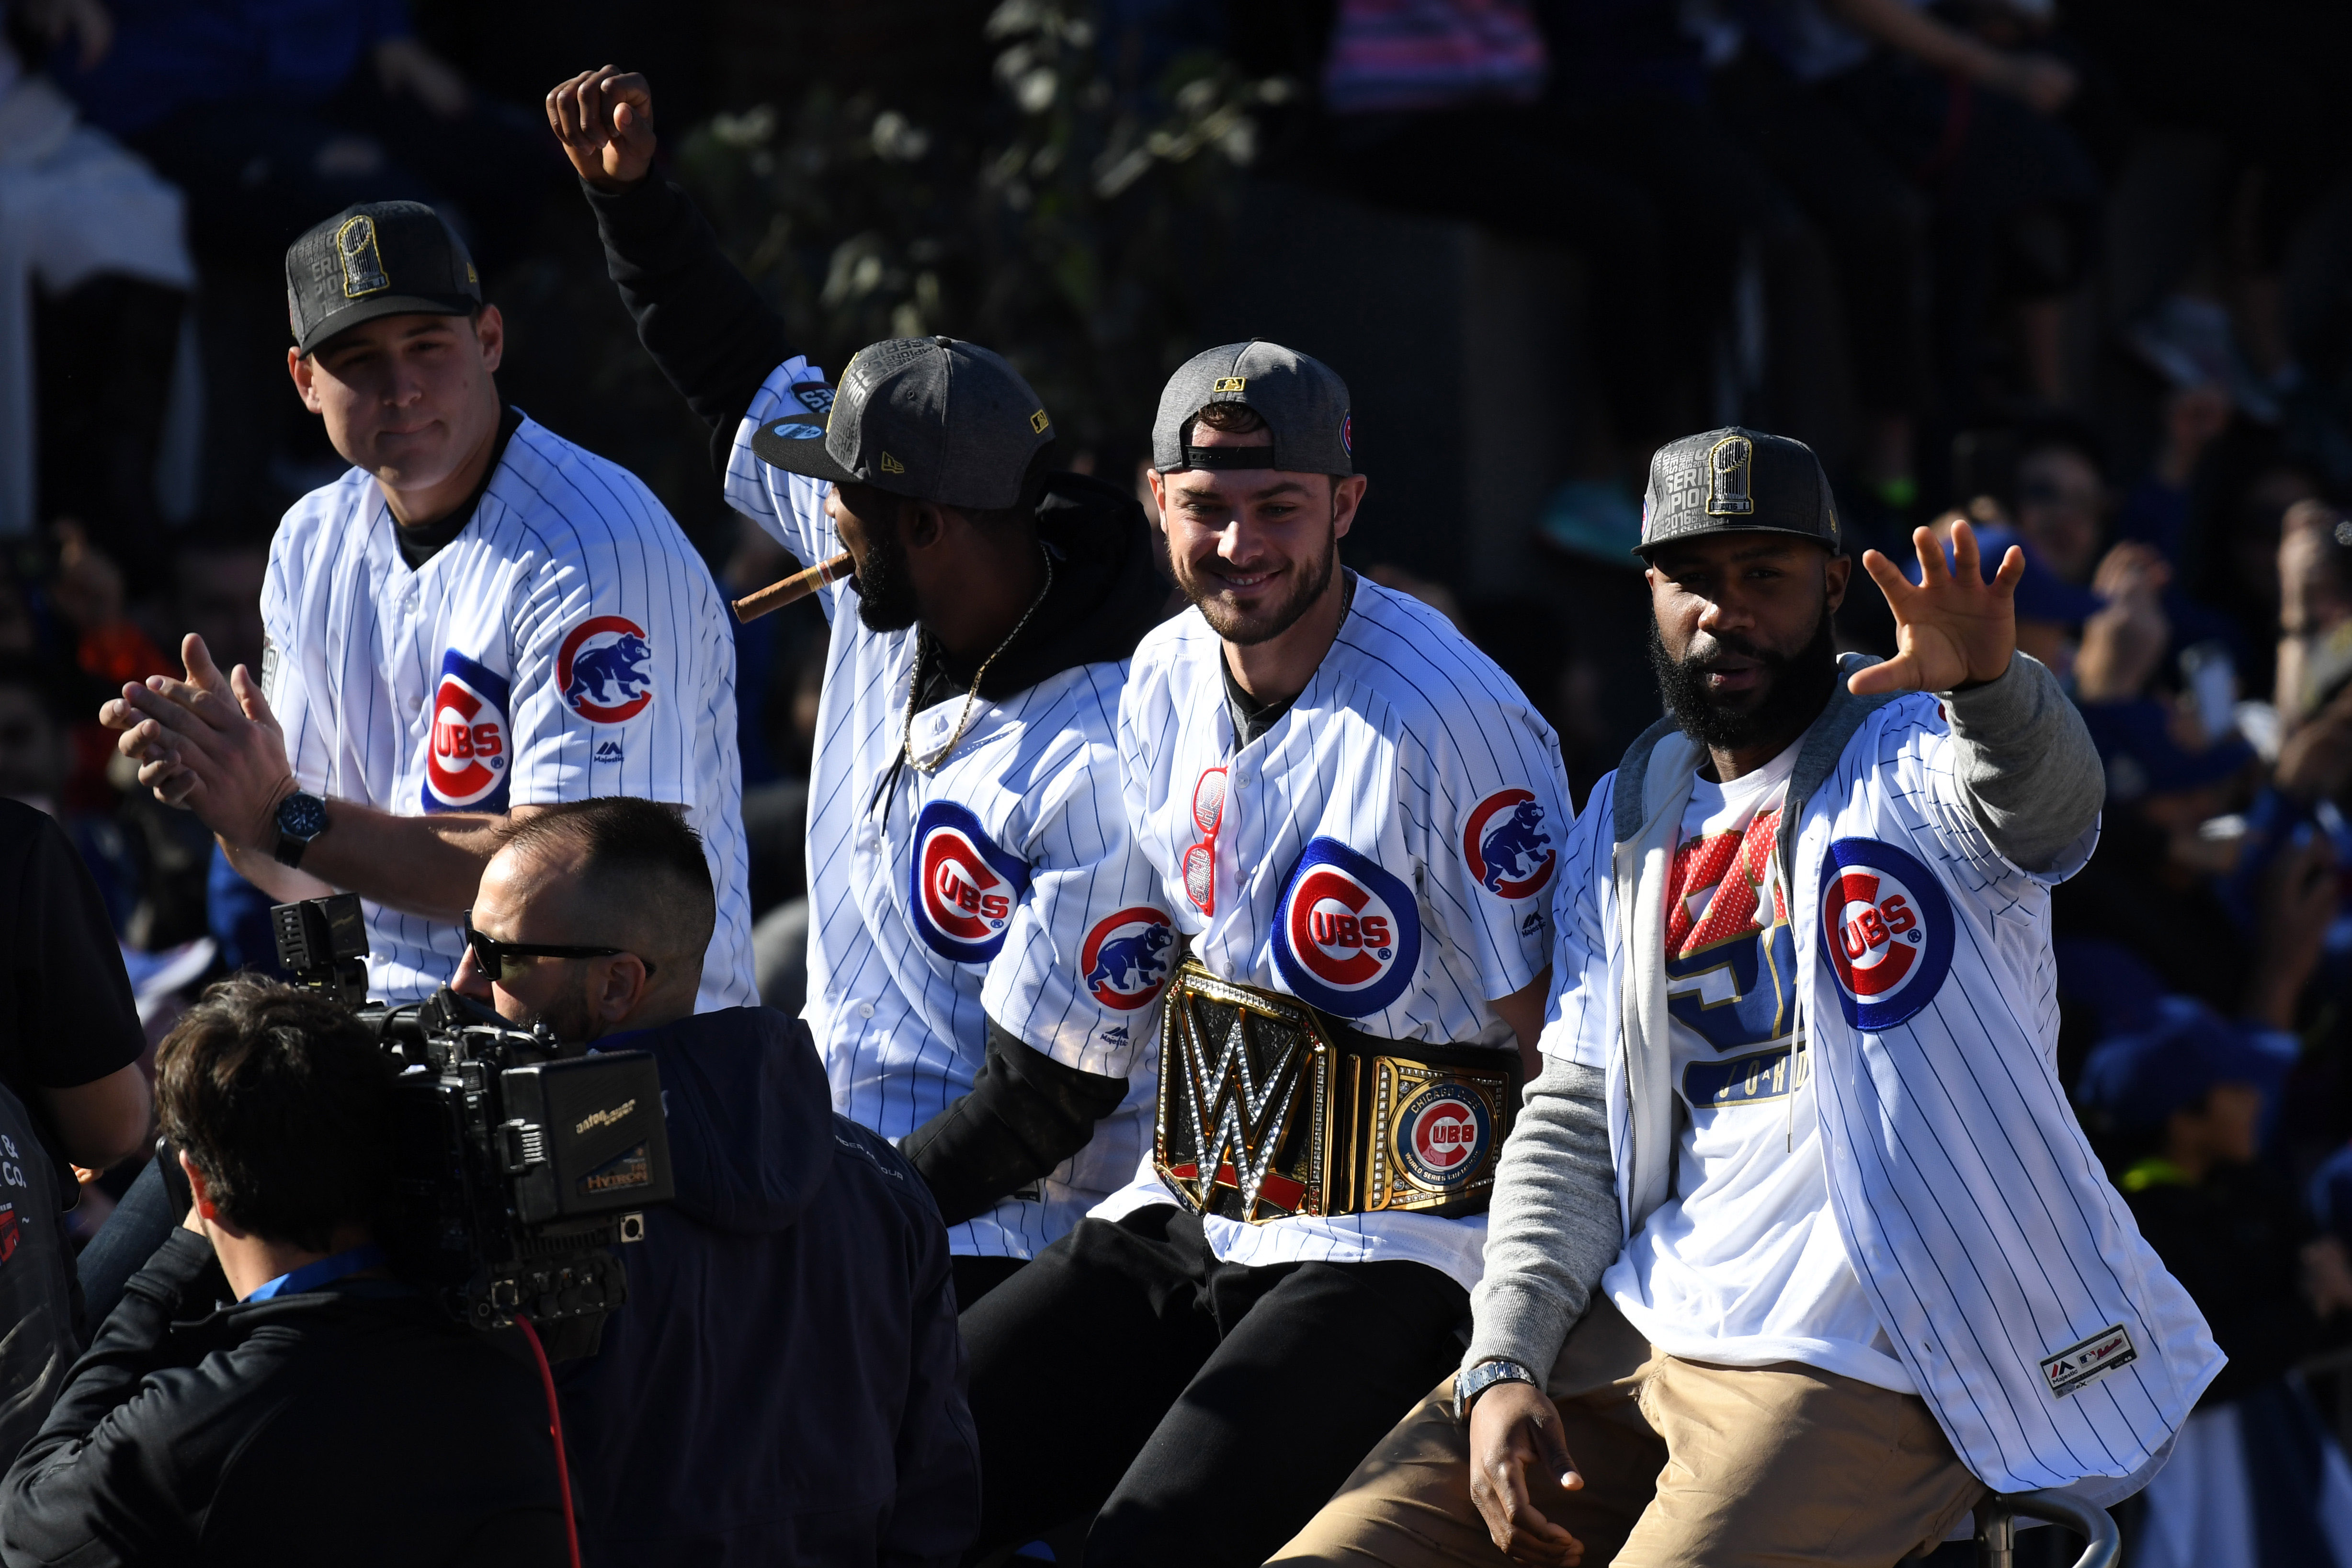 After just two seasons in Chicago, Kris Bryant has become one of the most beloved players on the team. (Patrick Gorski/USA TODAY Sports)